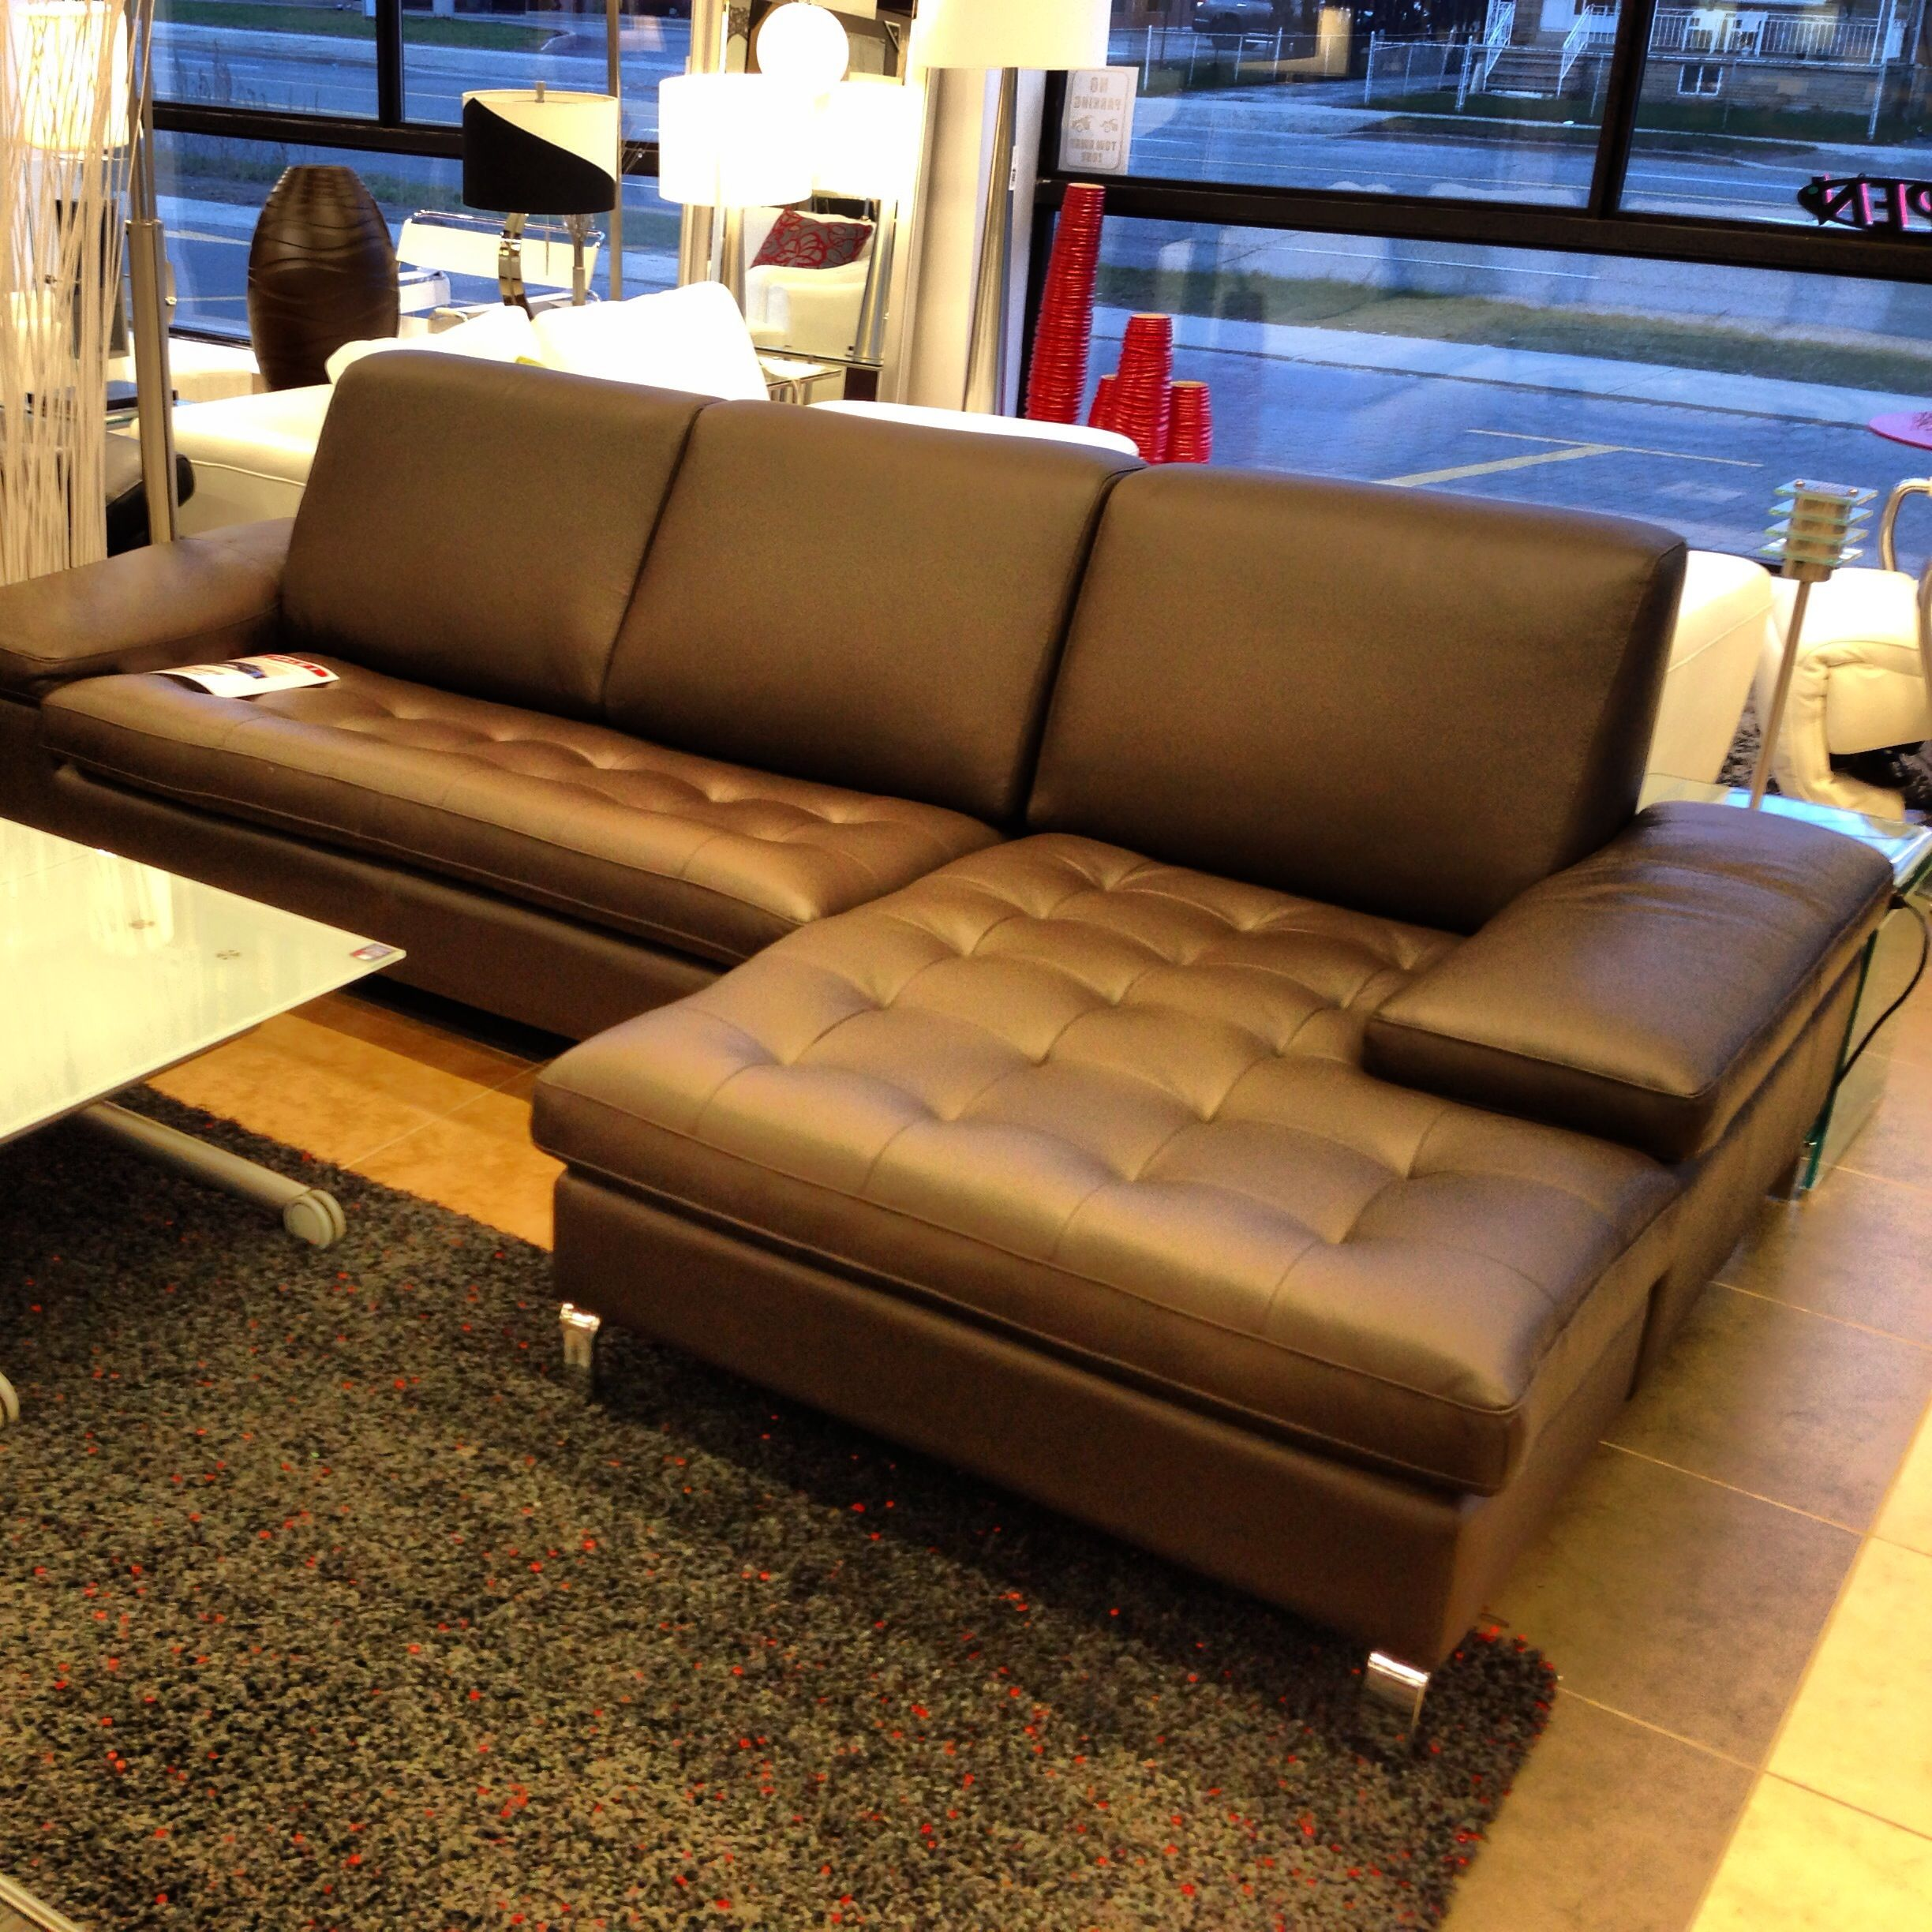 Brown Leather Sectional Sofa From Furniture Toronto 2699 Www